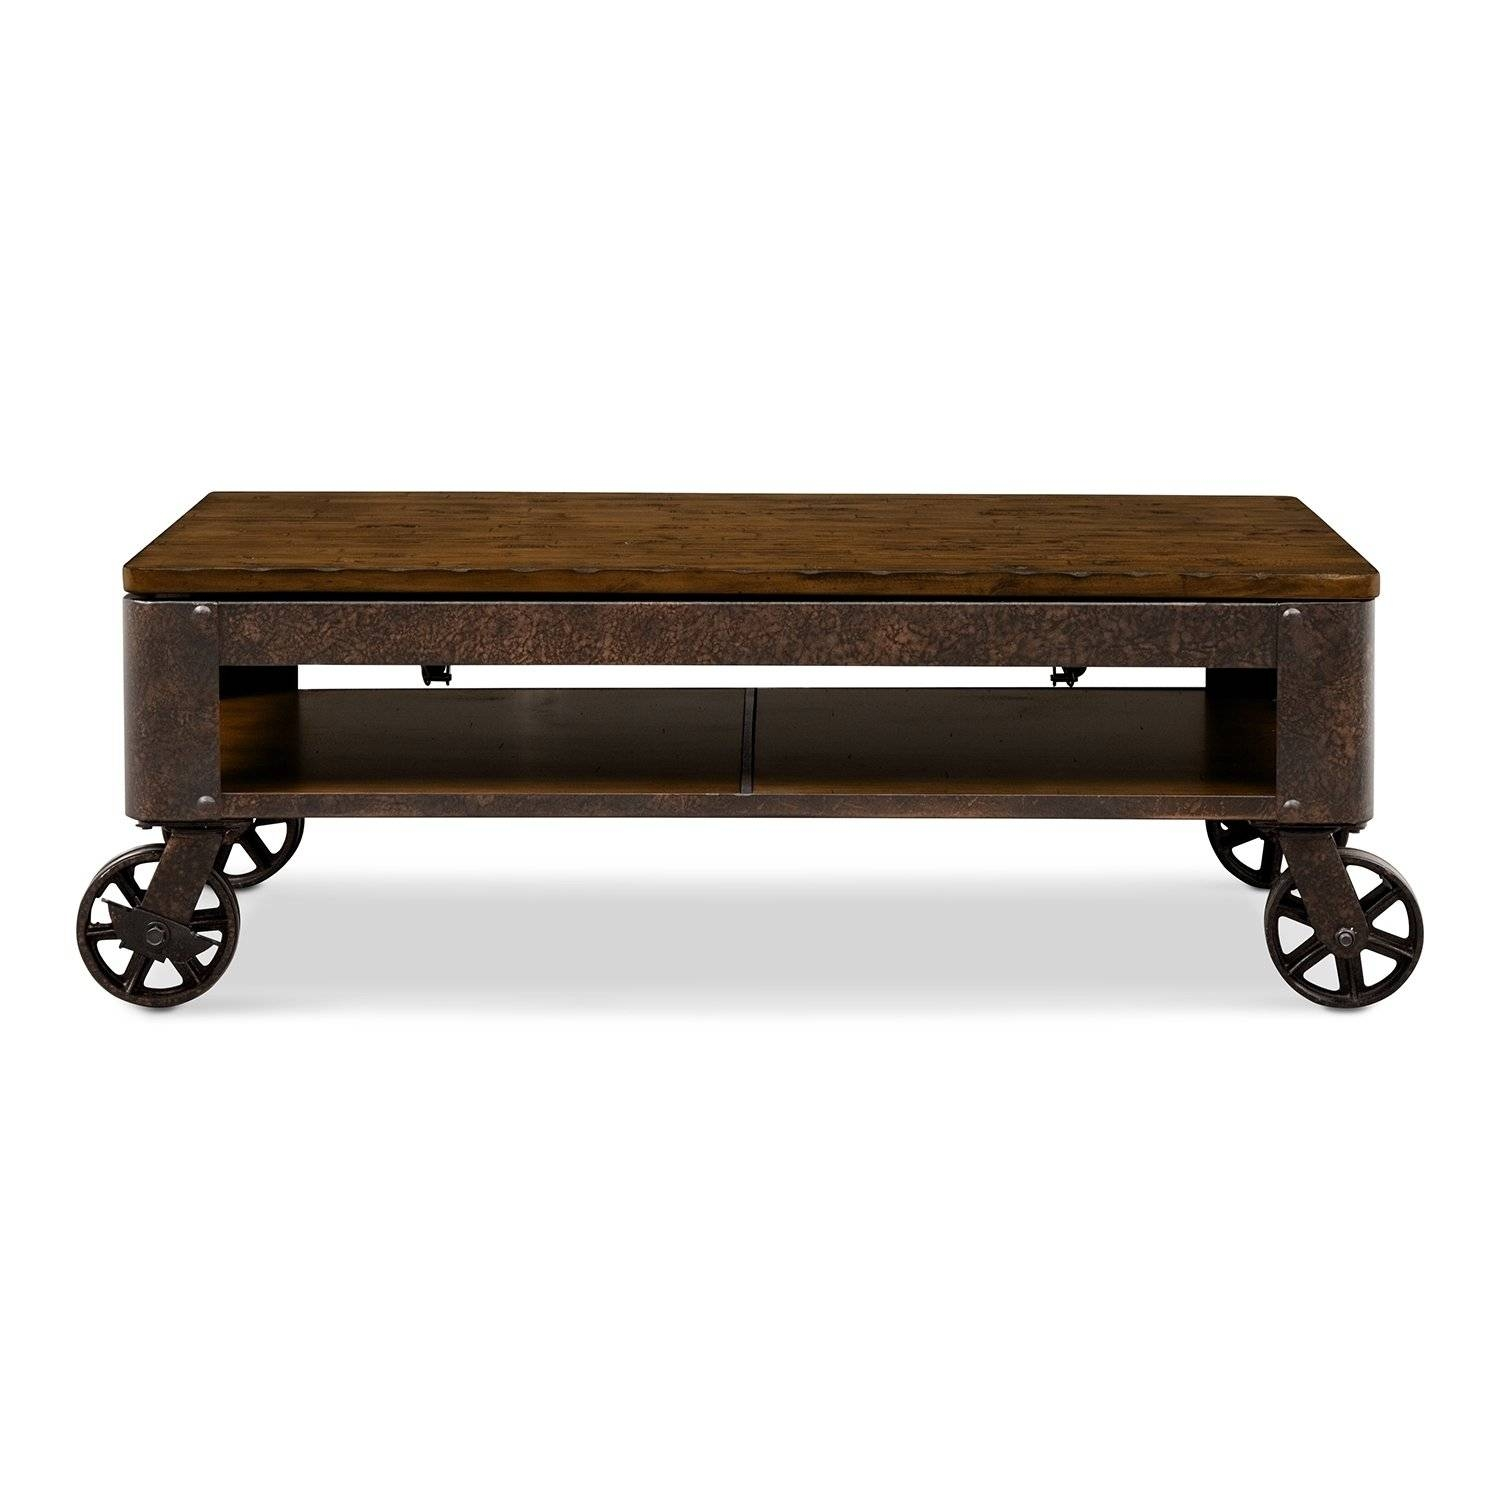 Coffee Table: Simple Rustic Coffee Table With Wheels Ideas Car inside Rustic Coffee Table With Wheels (Image 4 of 30)